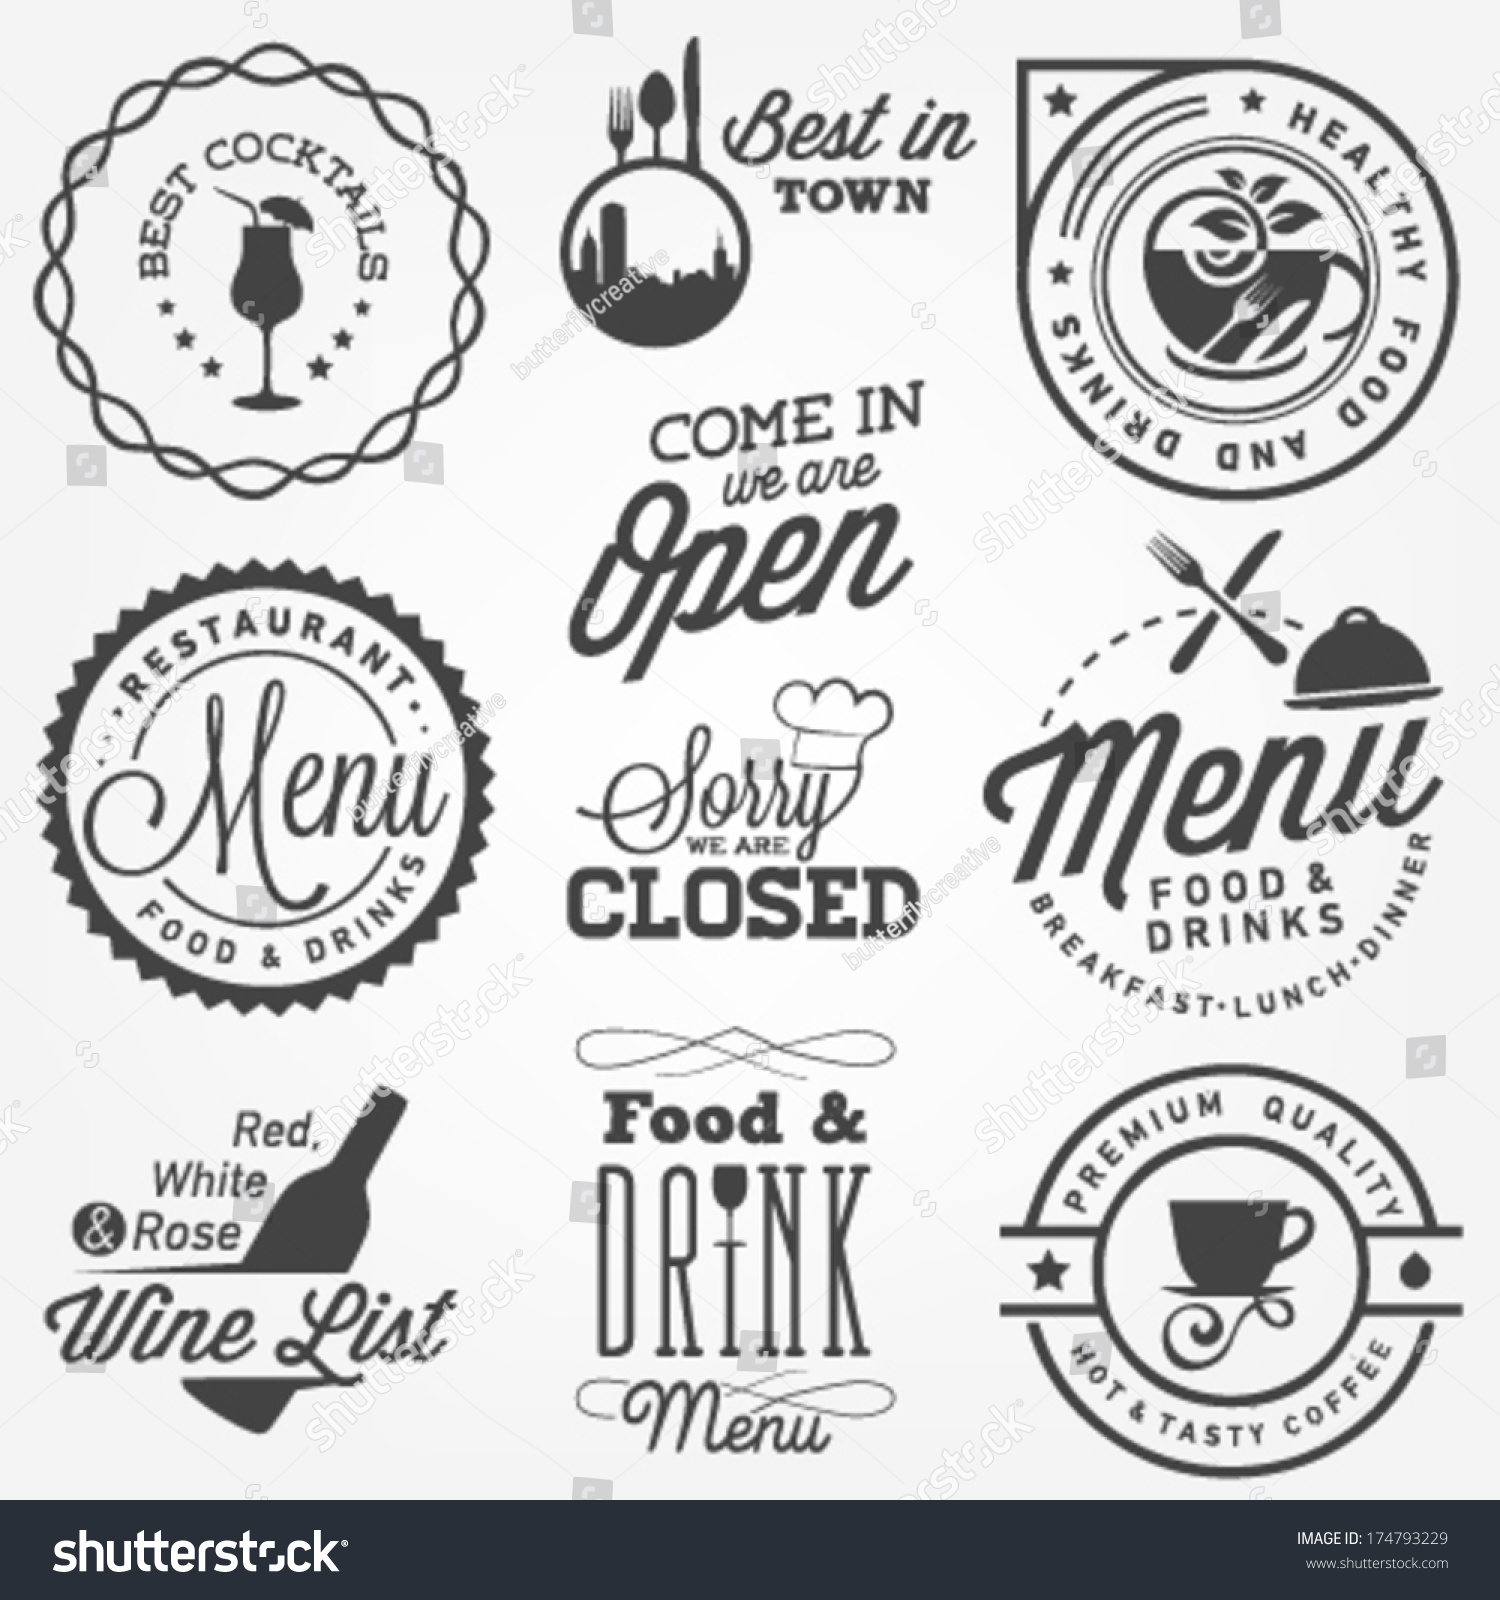 Collection of restaurant menu design elements in vintage